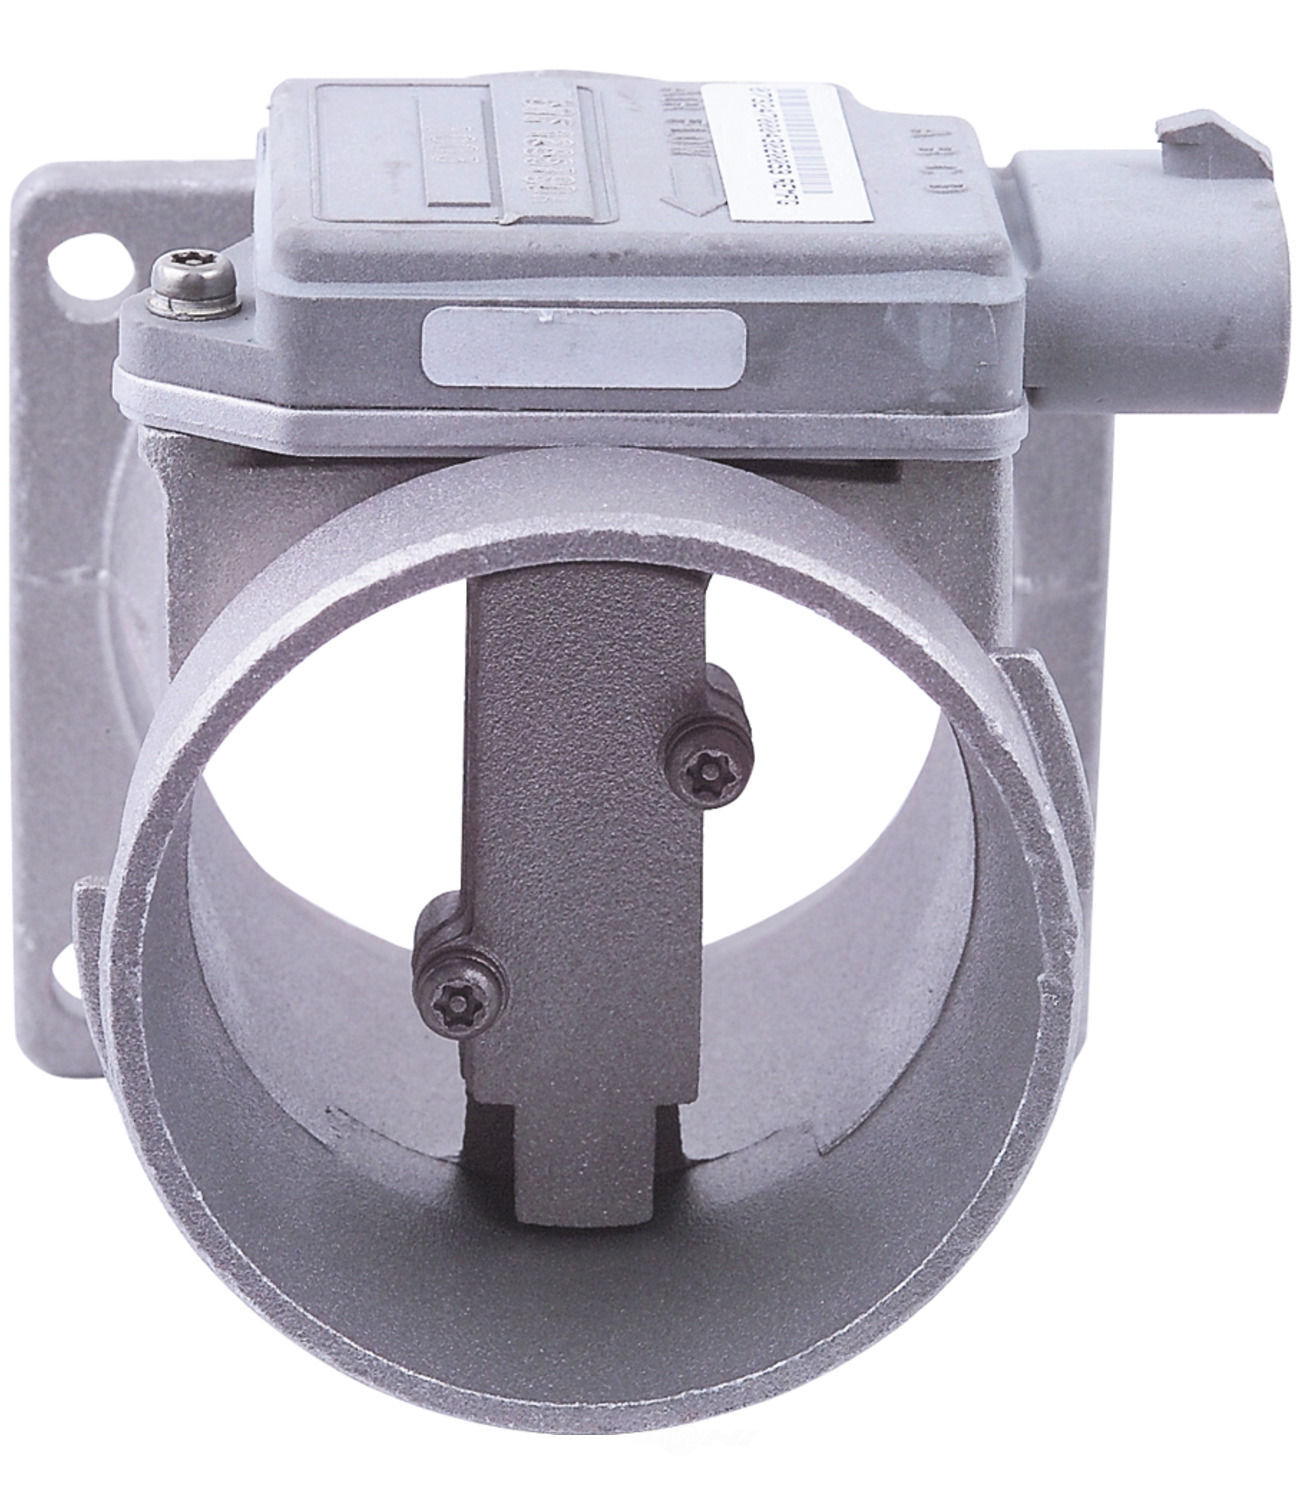 CARDONE REMAN - Mass Air Flow Sensor - A1C 74-9513